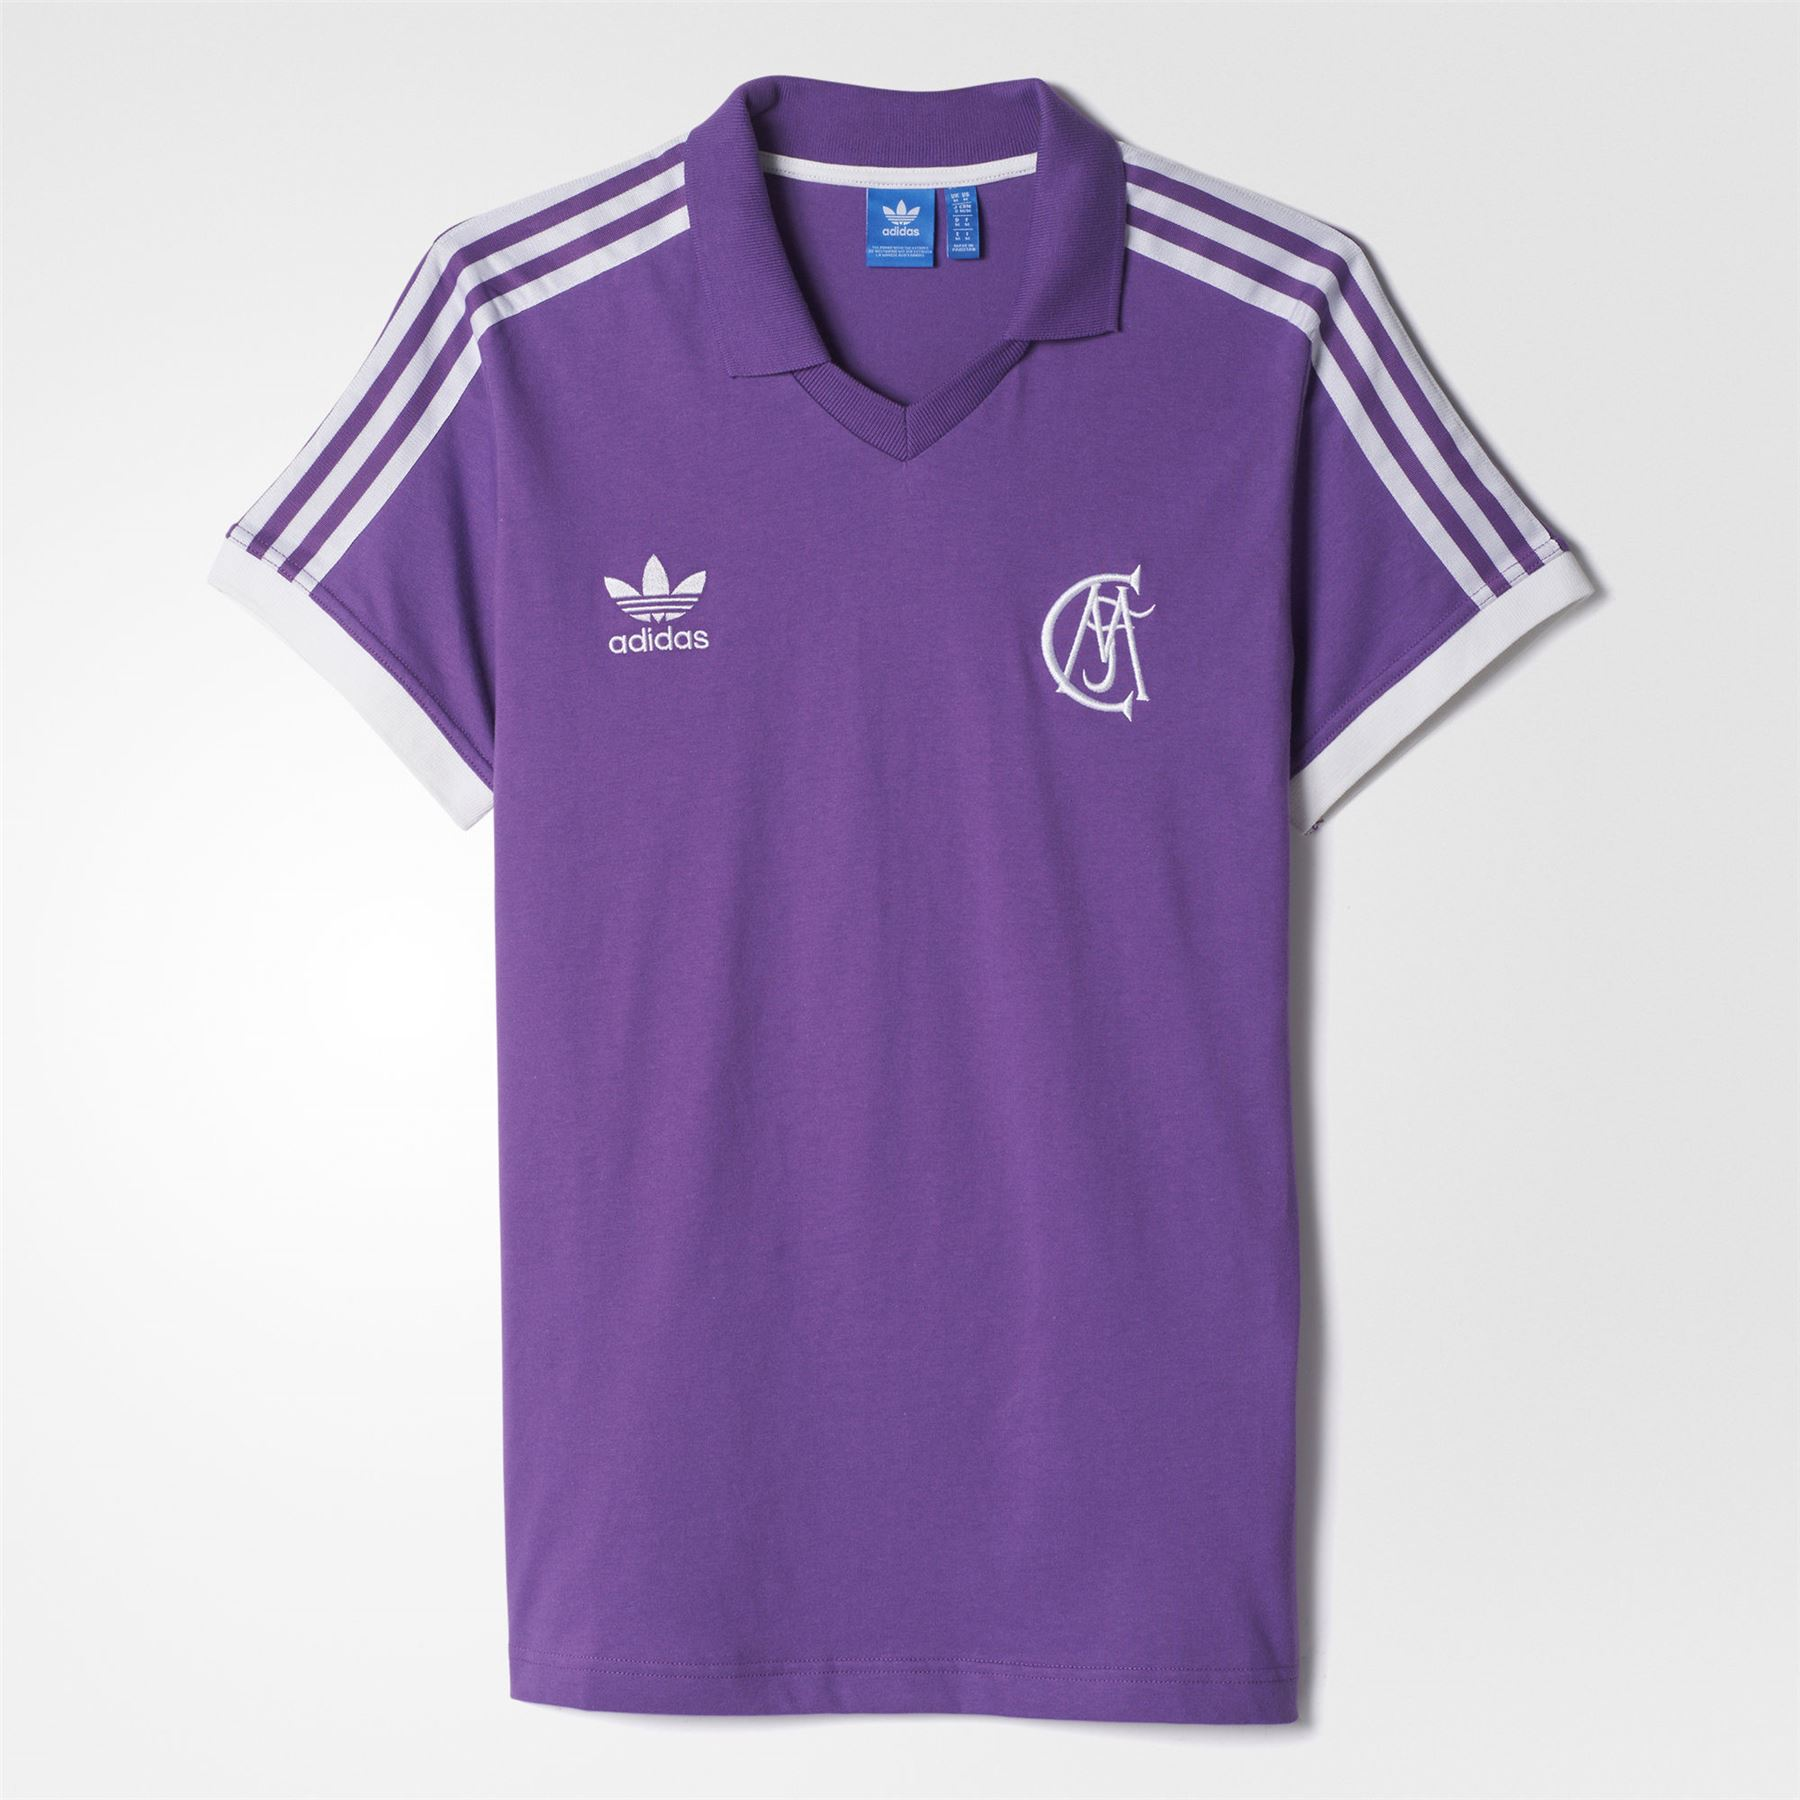 083aa22c8 adidas ORIGINALS RETRO REAL MADRID JERSEY PURPLE FOOTBALL SOCCER MEN S